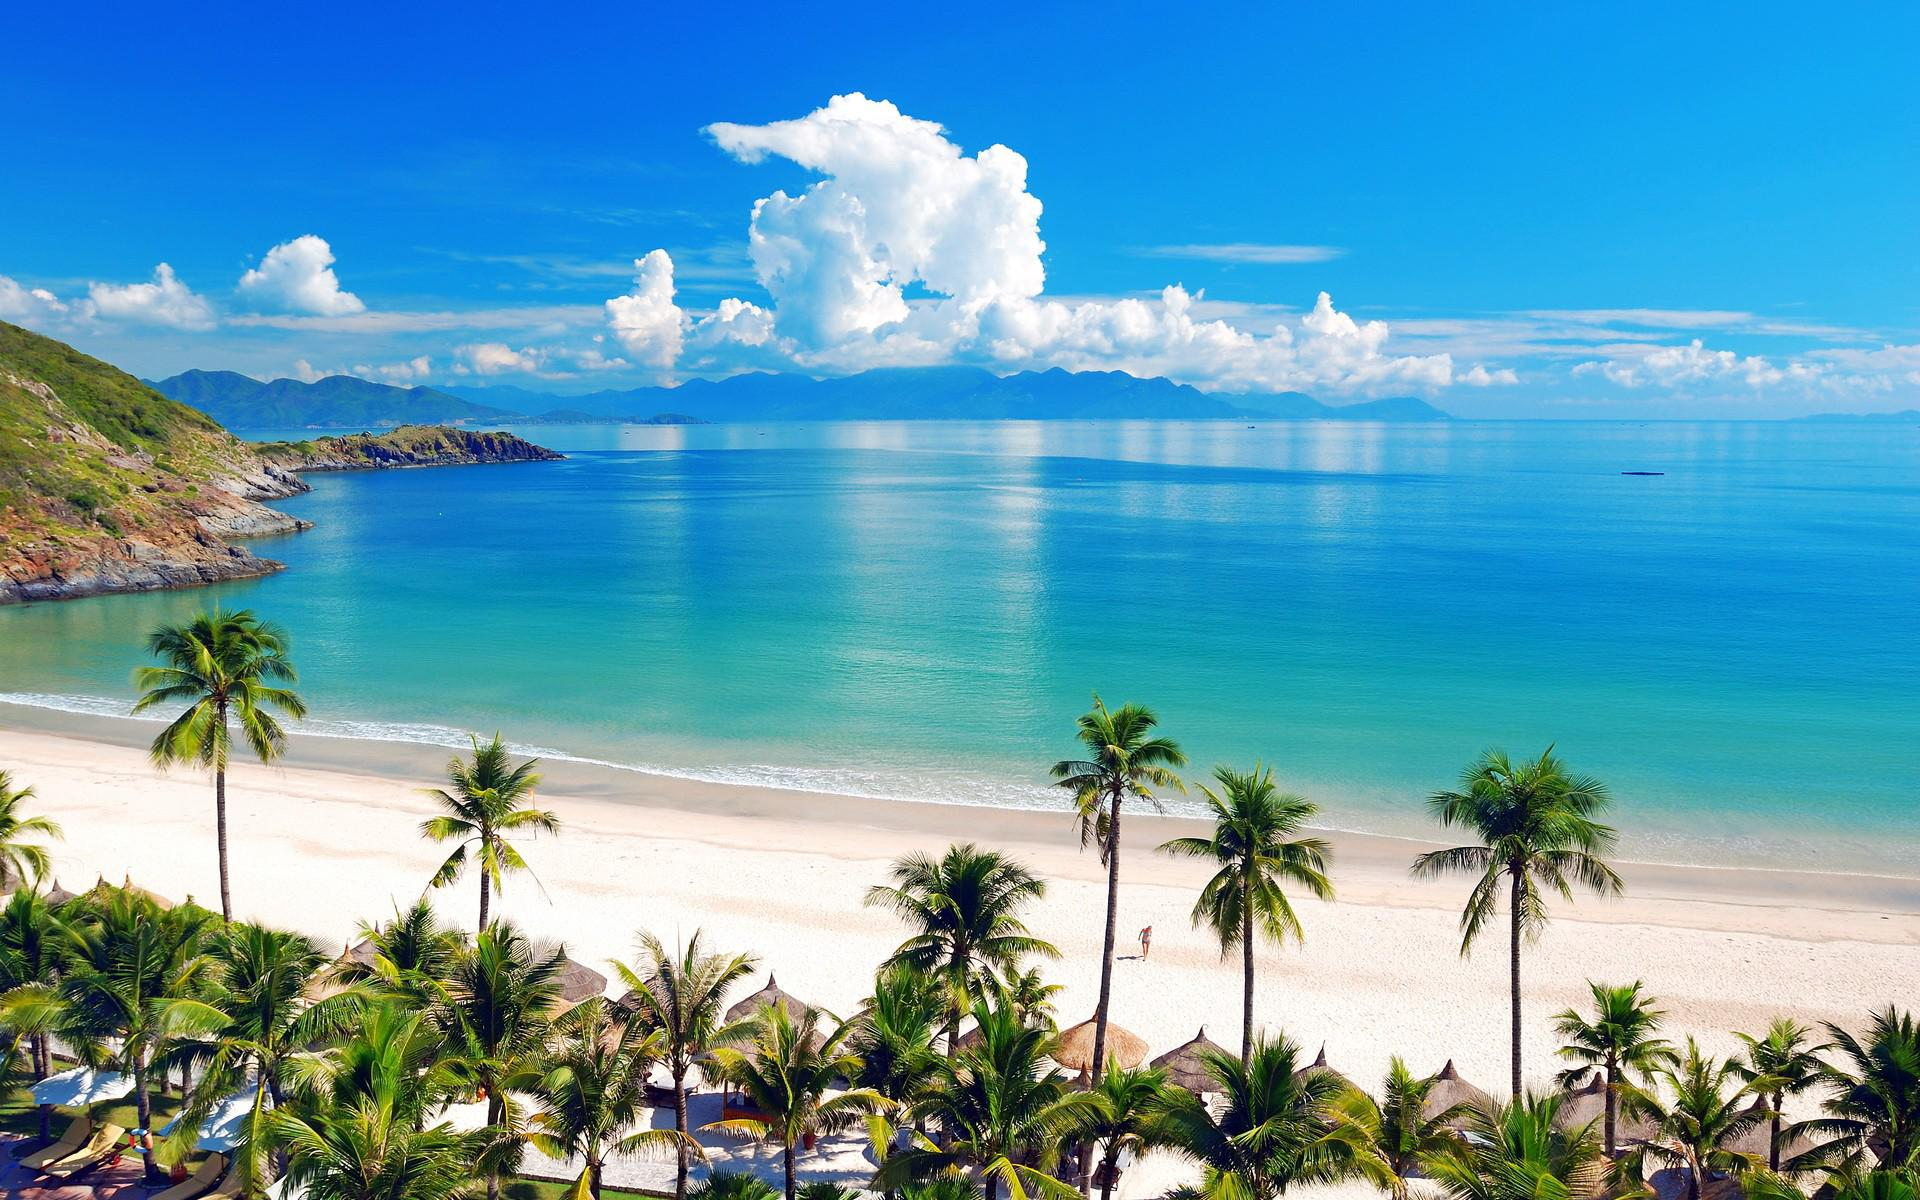 Vietnam Discovery tour 18 days with beach relax